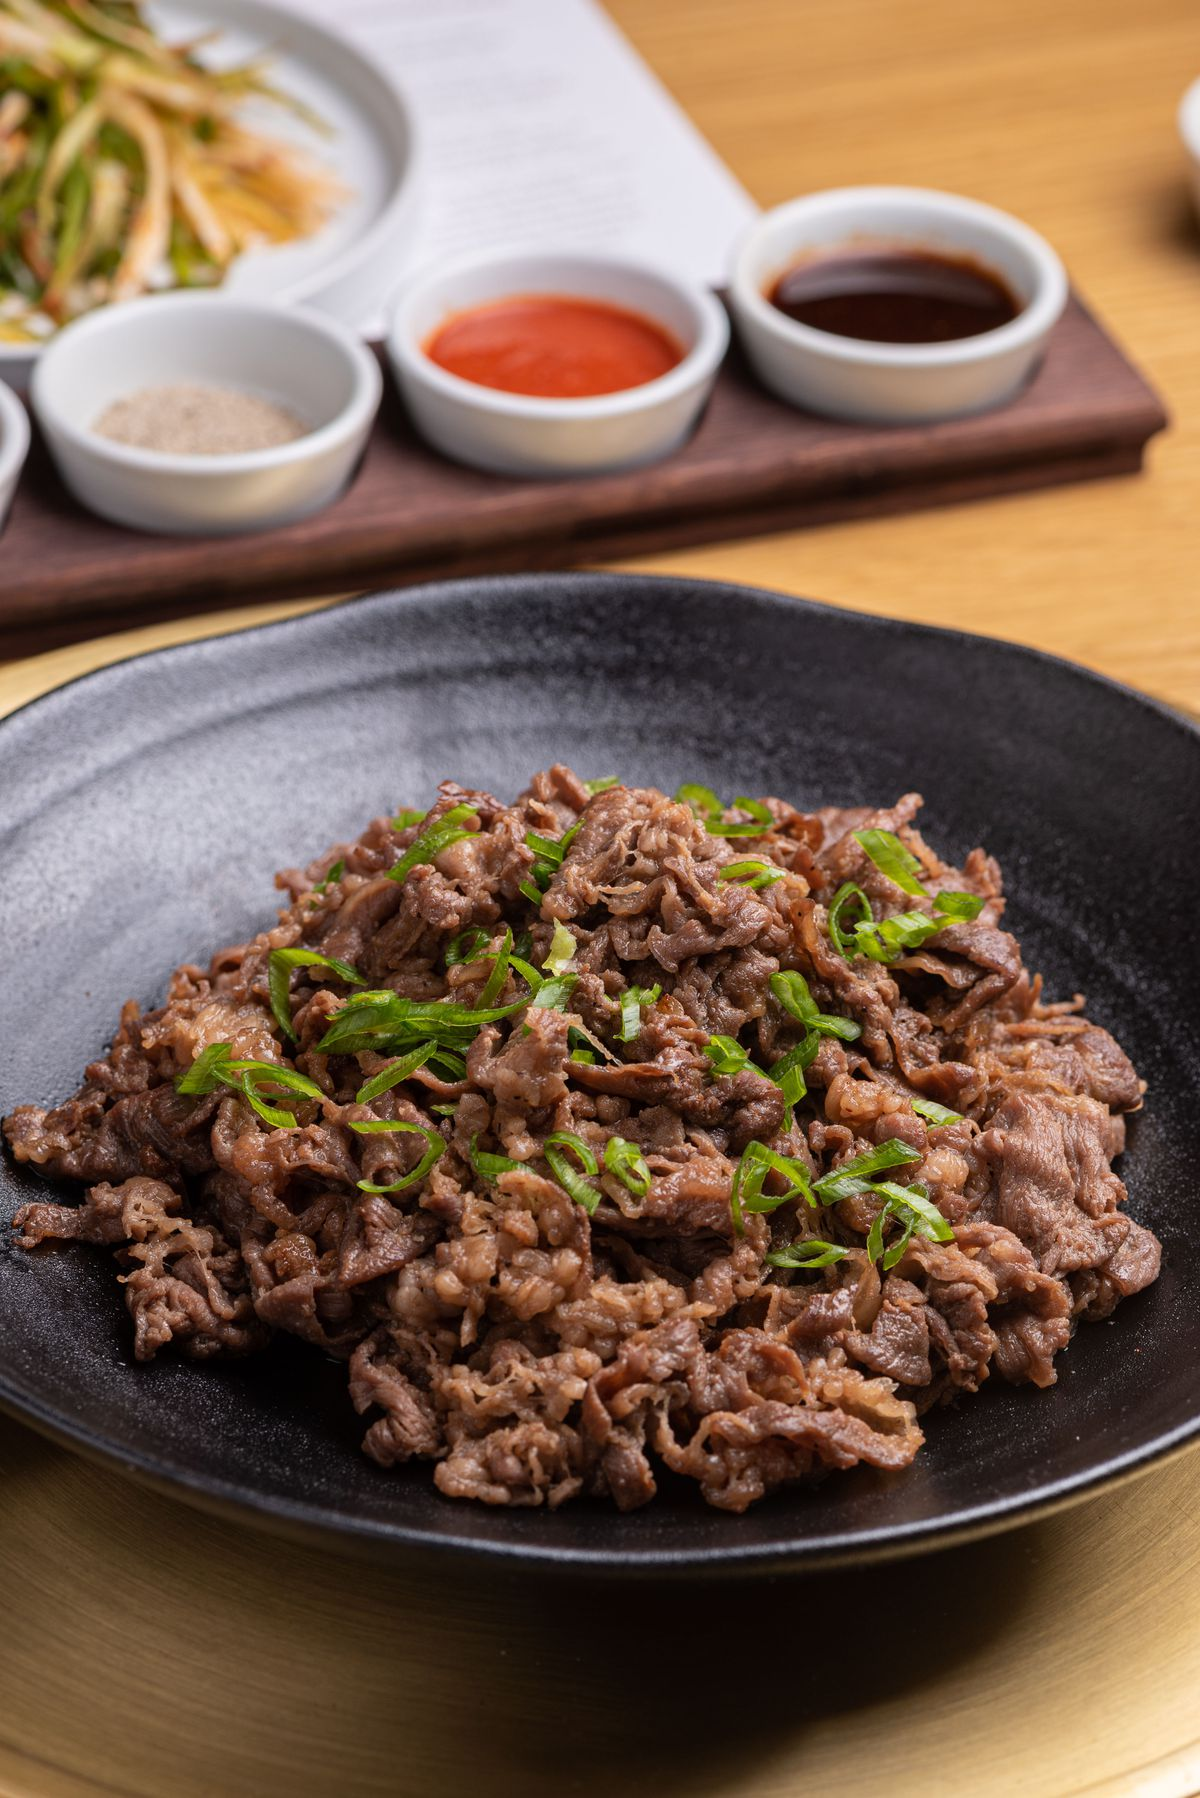 Thinly sliced deungshim meat with light marinade.